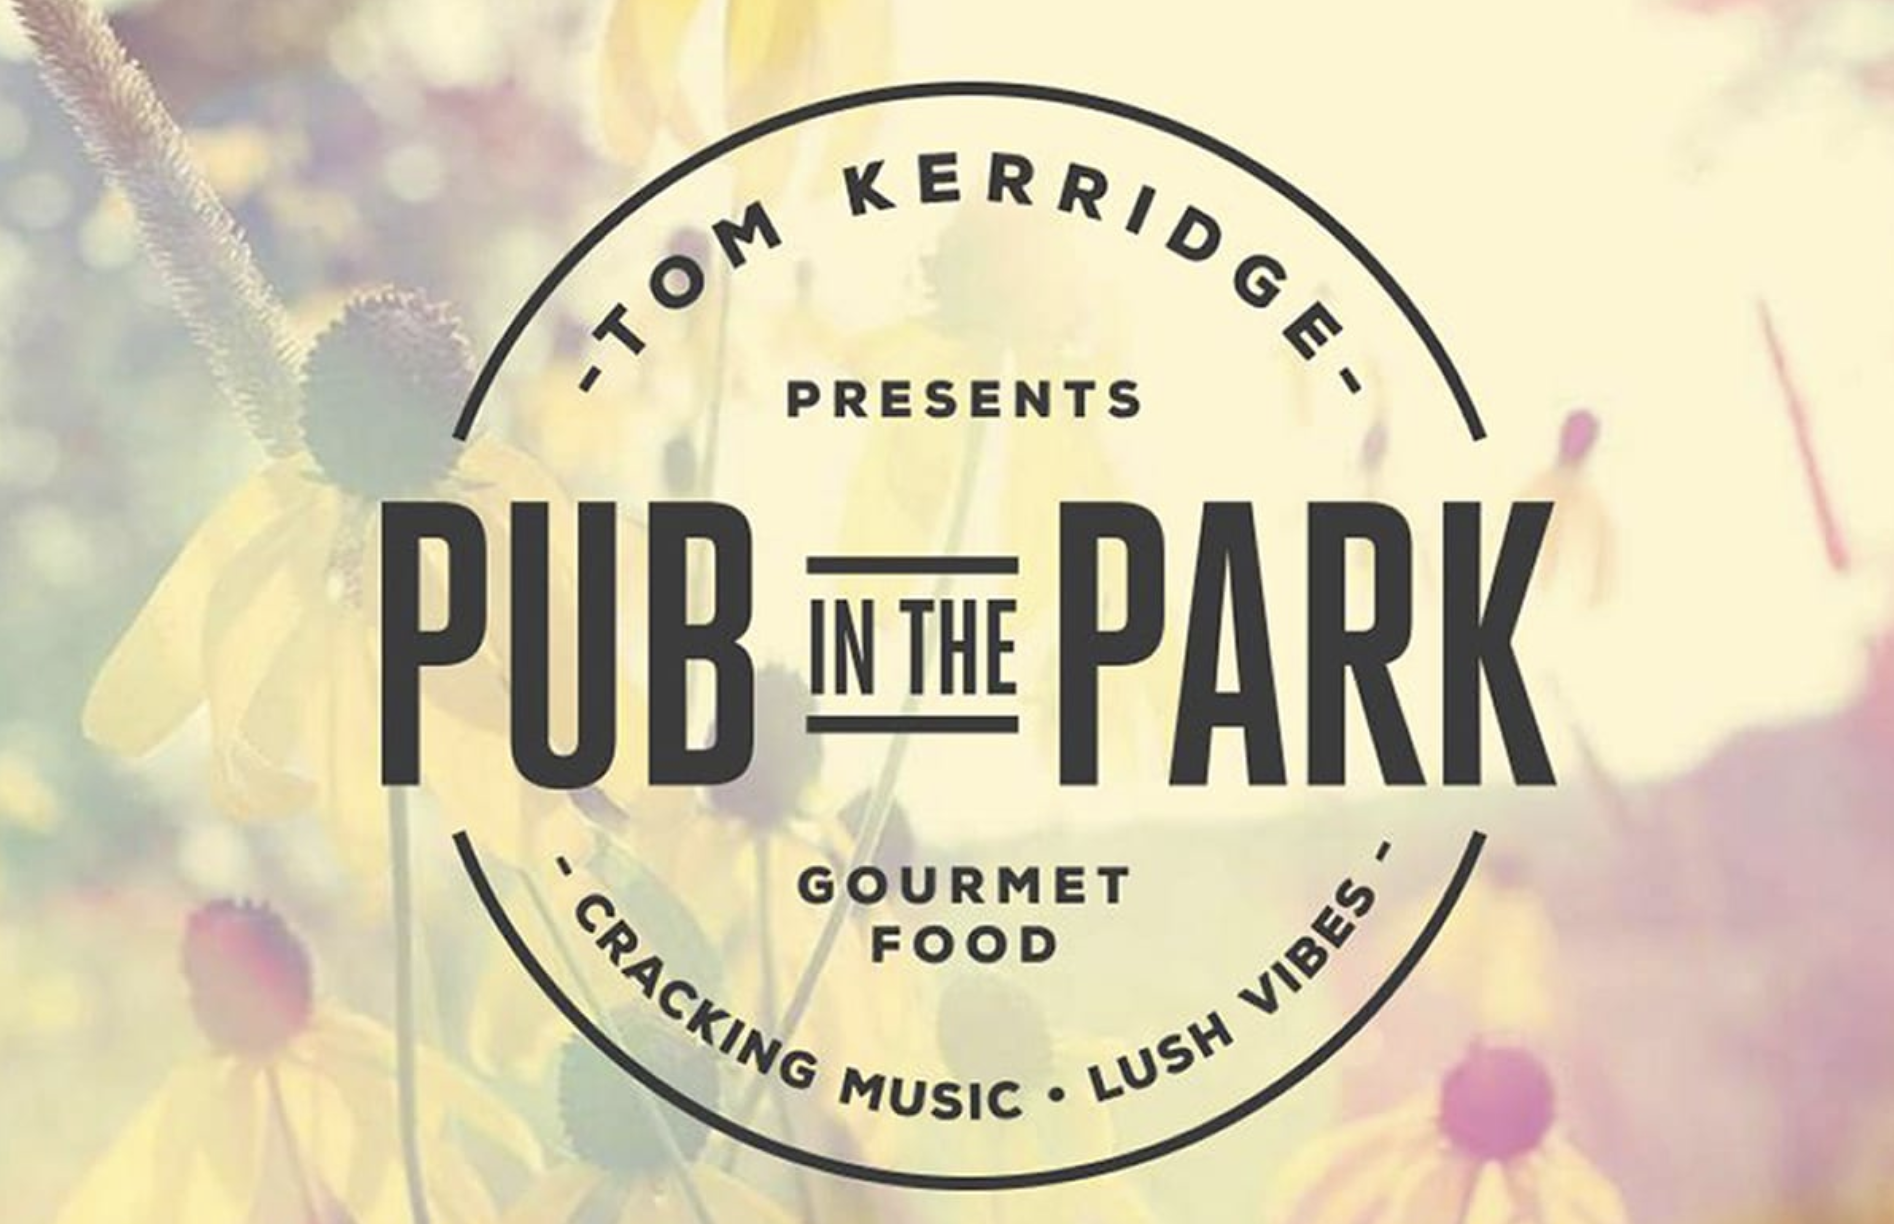 PUB IN THE PARK, WARWICK - 5th - 7th JULY 2019We are excited to be attending Pub in the Park Warwick alongside cracking shopping, bars and other festival fun!